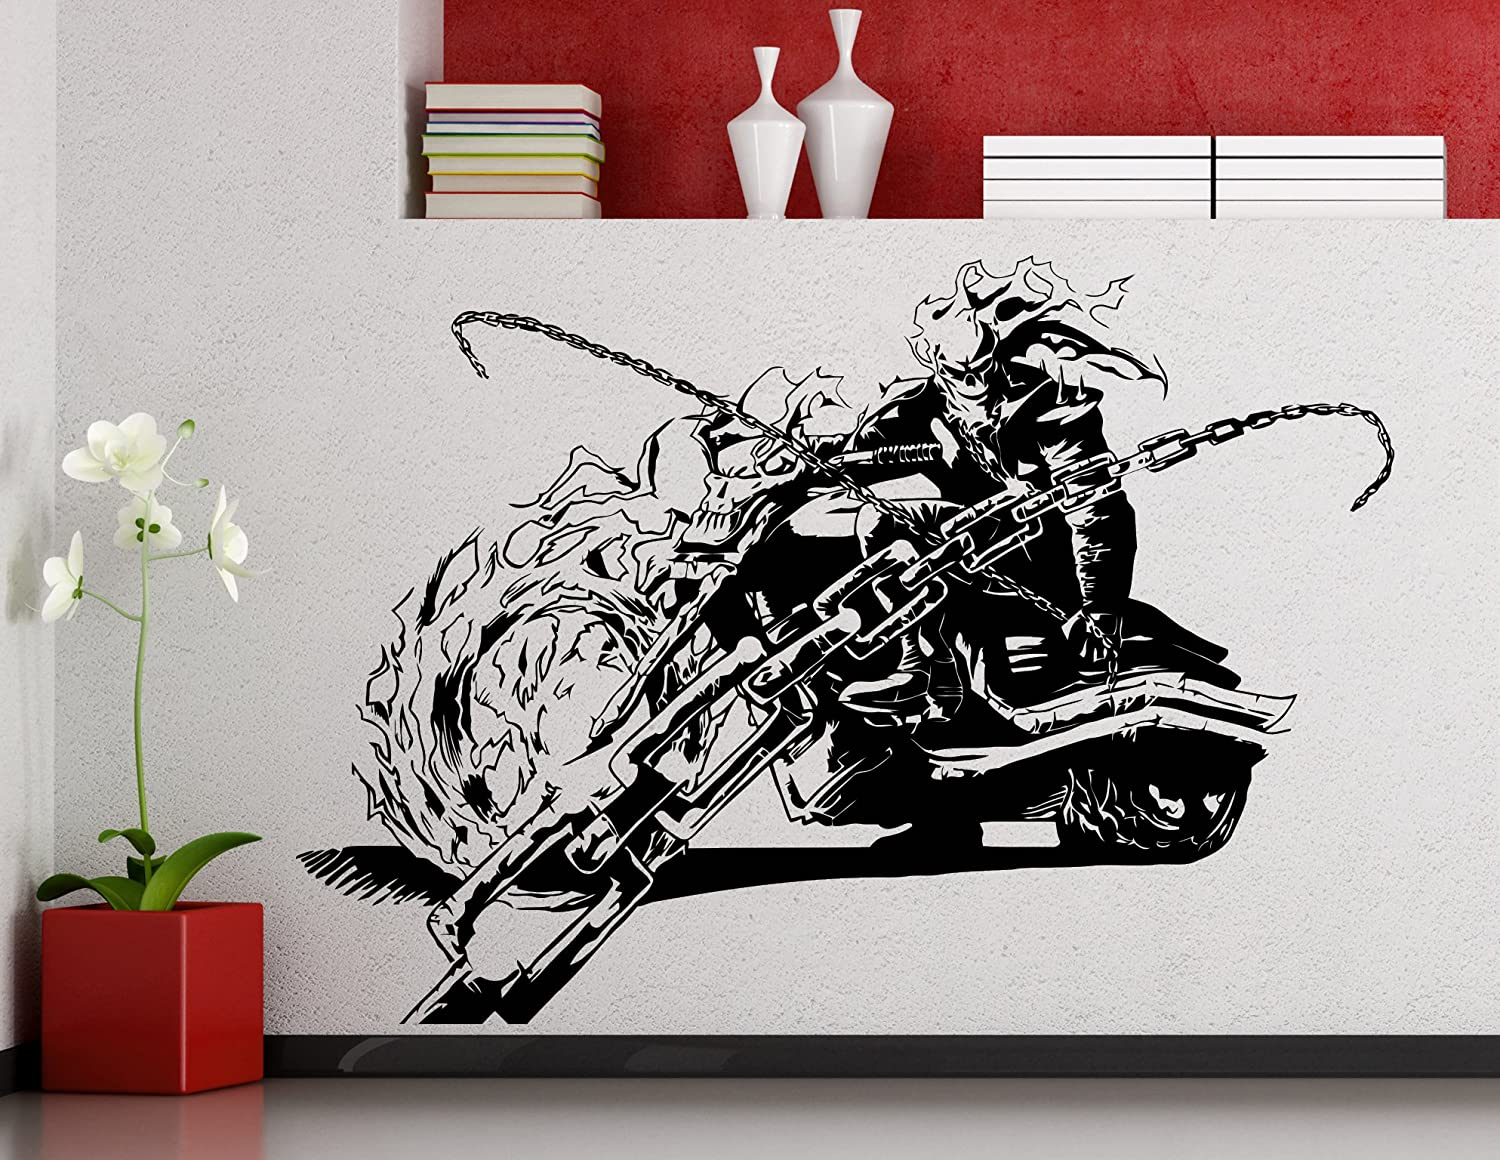 Ghost rider wall decal superhero sticker comics art home decoration any room waterproof sticker 243su amazon com